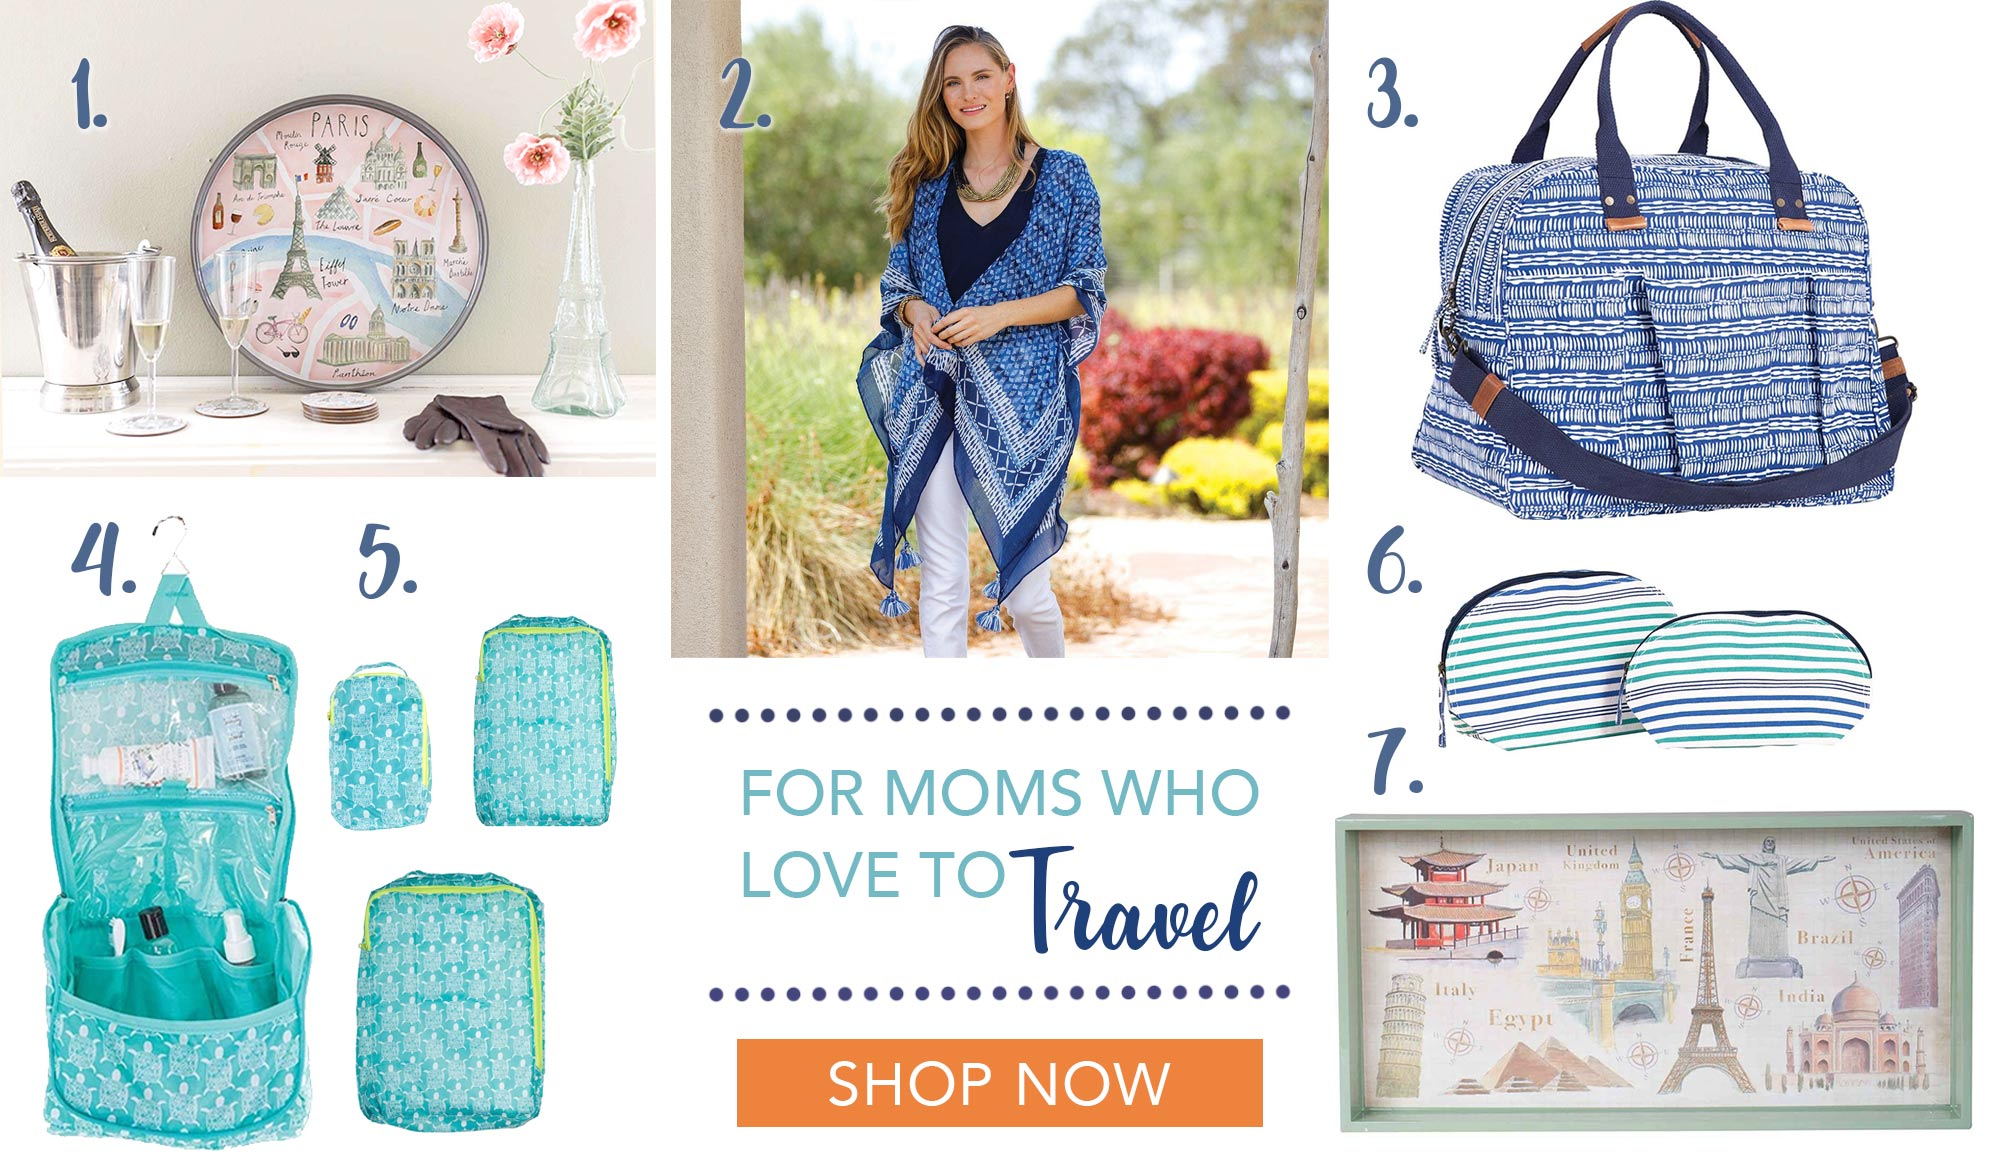 Mother's Day Gifts for Moms Who Love to Travel